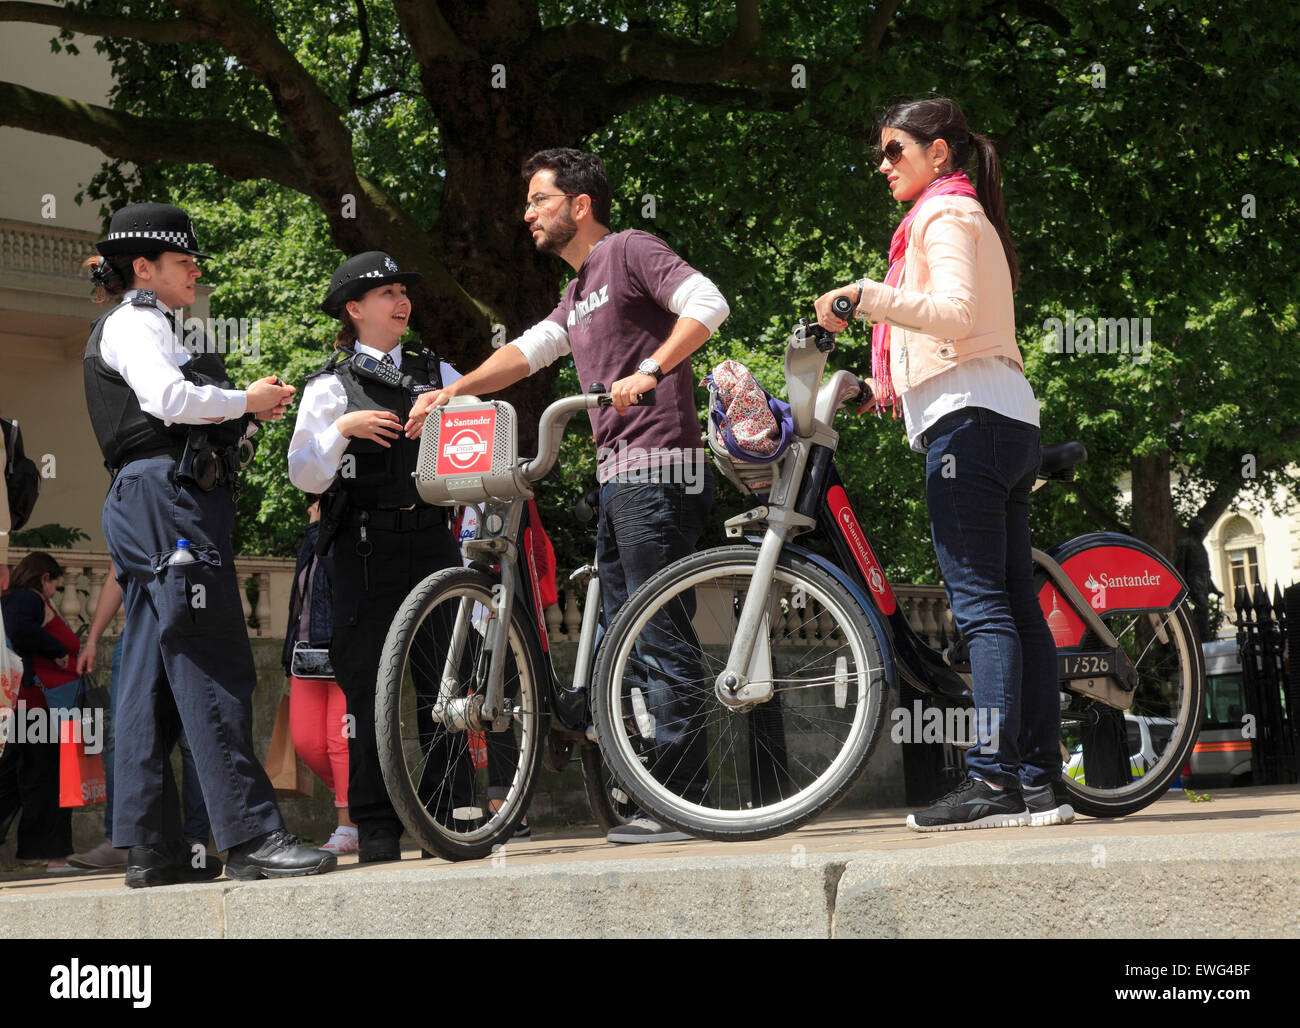 Two Police women give some help to  tourists  in London - Stock Image